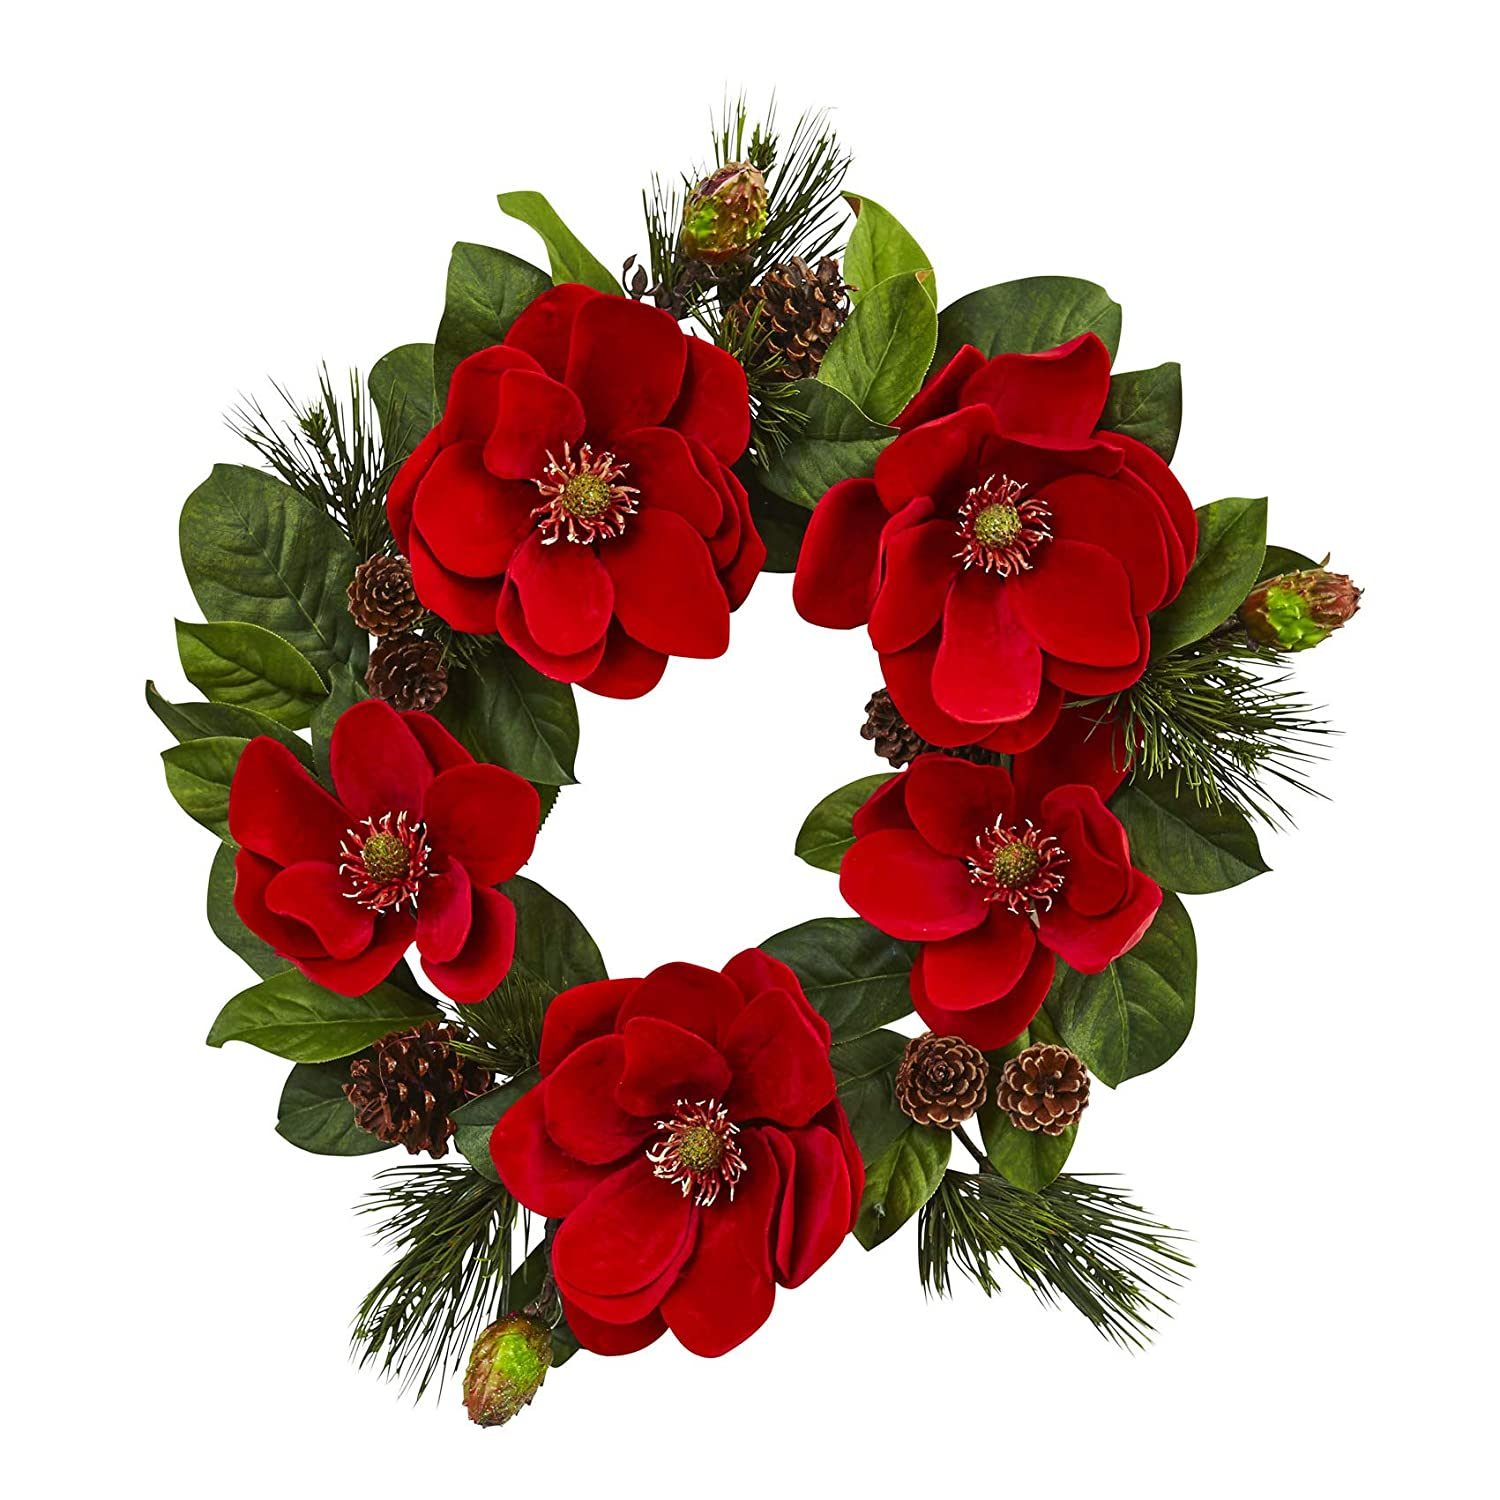 Amazon Com Artificial Plantz Christmas Wreath 24 Inch Red Magnolia